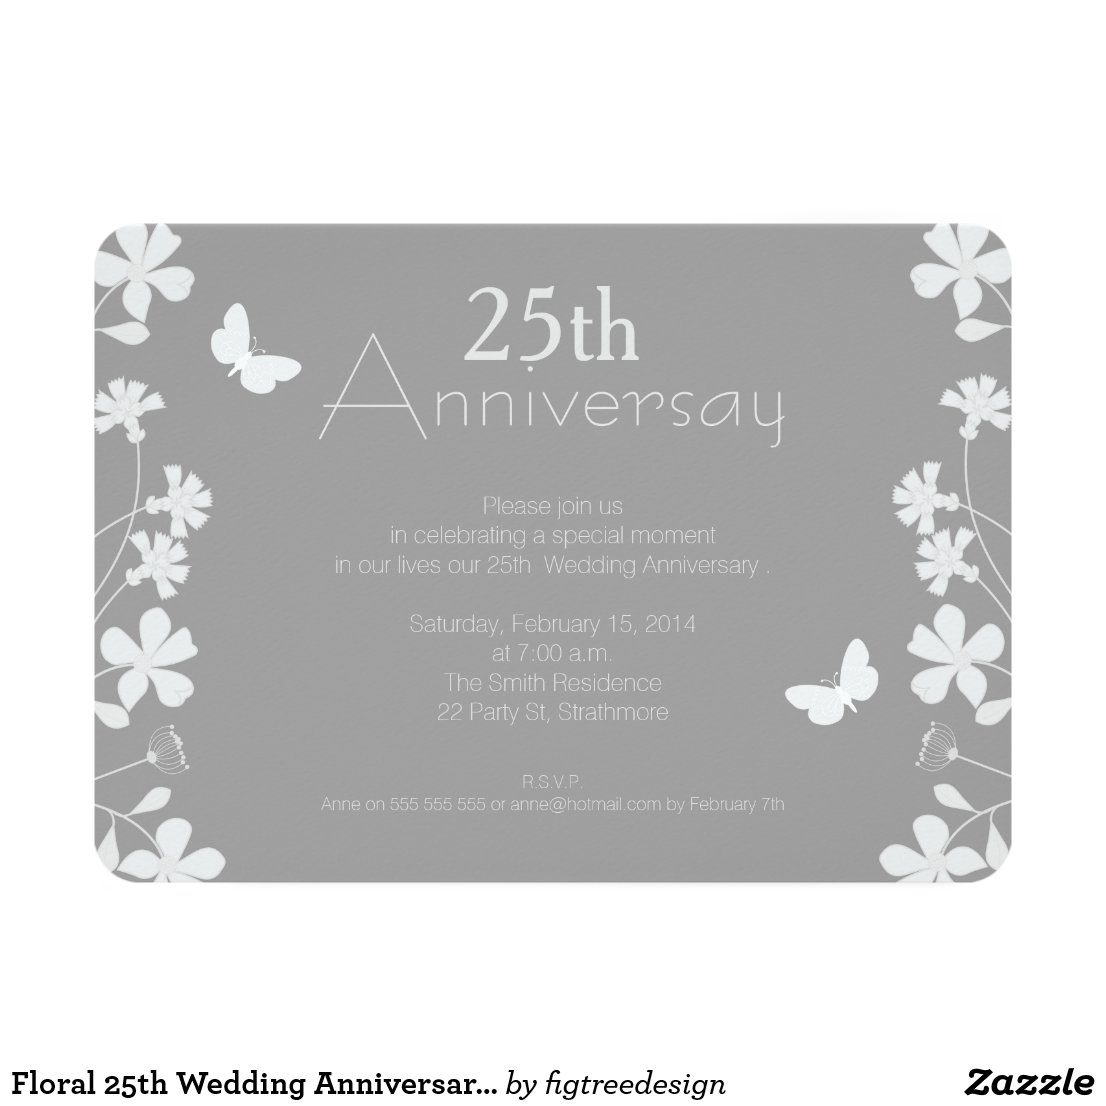 Floral 25th Wedding Anniversary Invitation